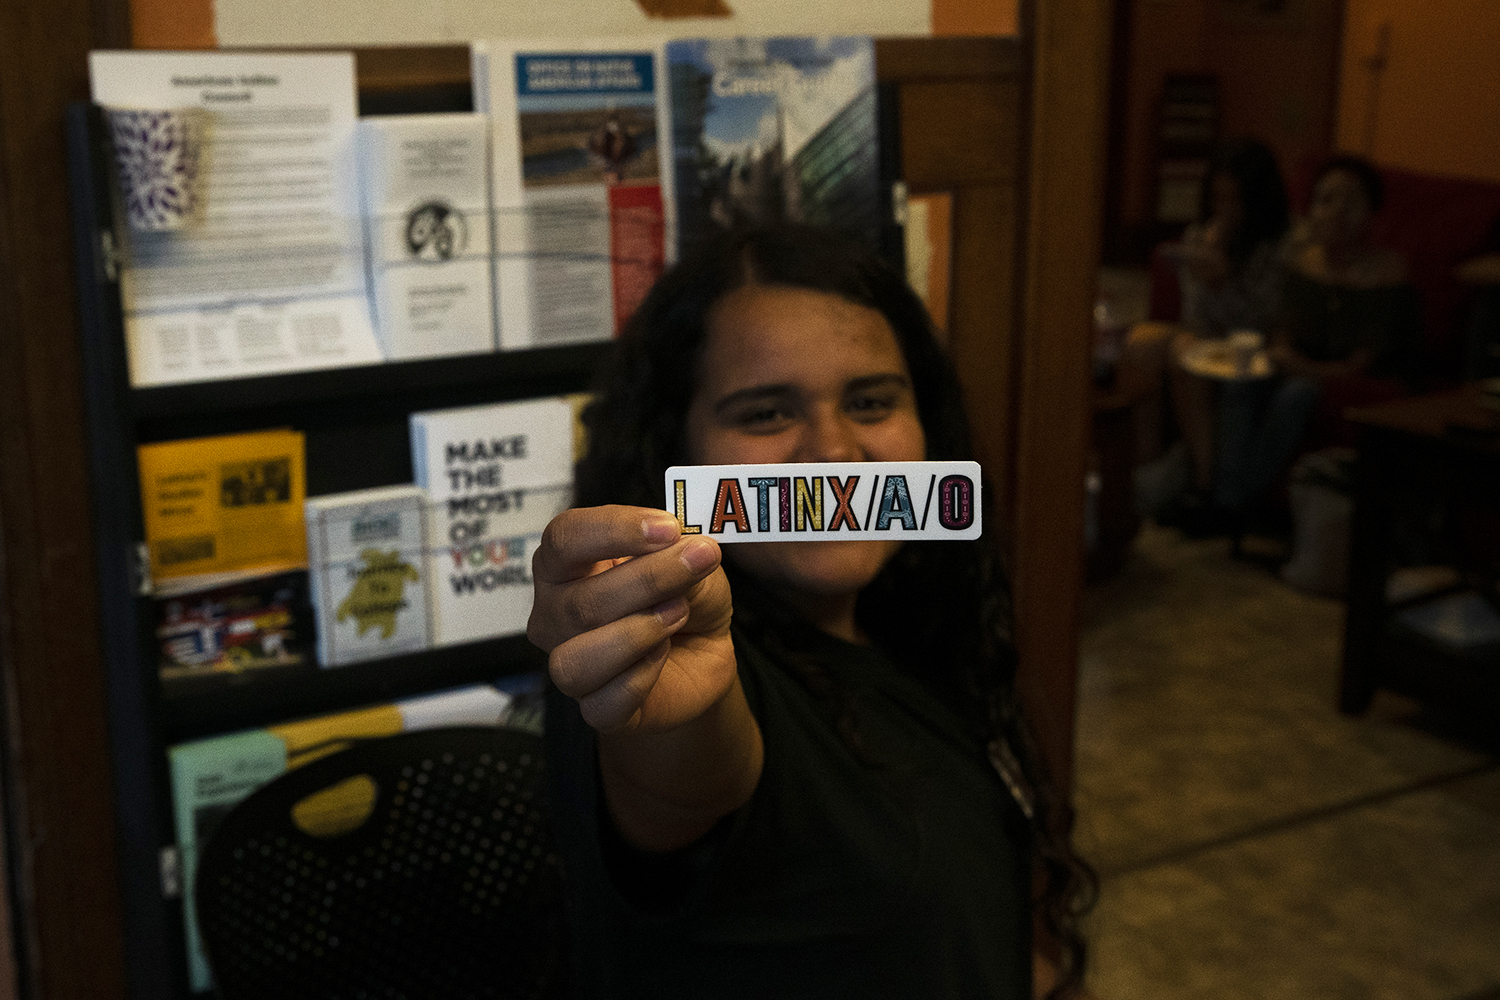 Latino Native American Cultural Center Student Lead Isabela Flores Lead presents a Latinx sticker in the Latino Native American Cultural Center on Sunday, September 19th, 2019. The Latino Native American Cultural Center is putting on multiple new events that span across different departments at the UI for graduate and undergraduate students.